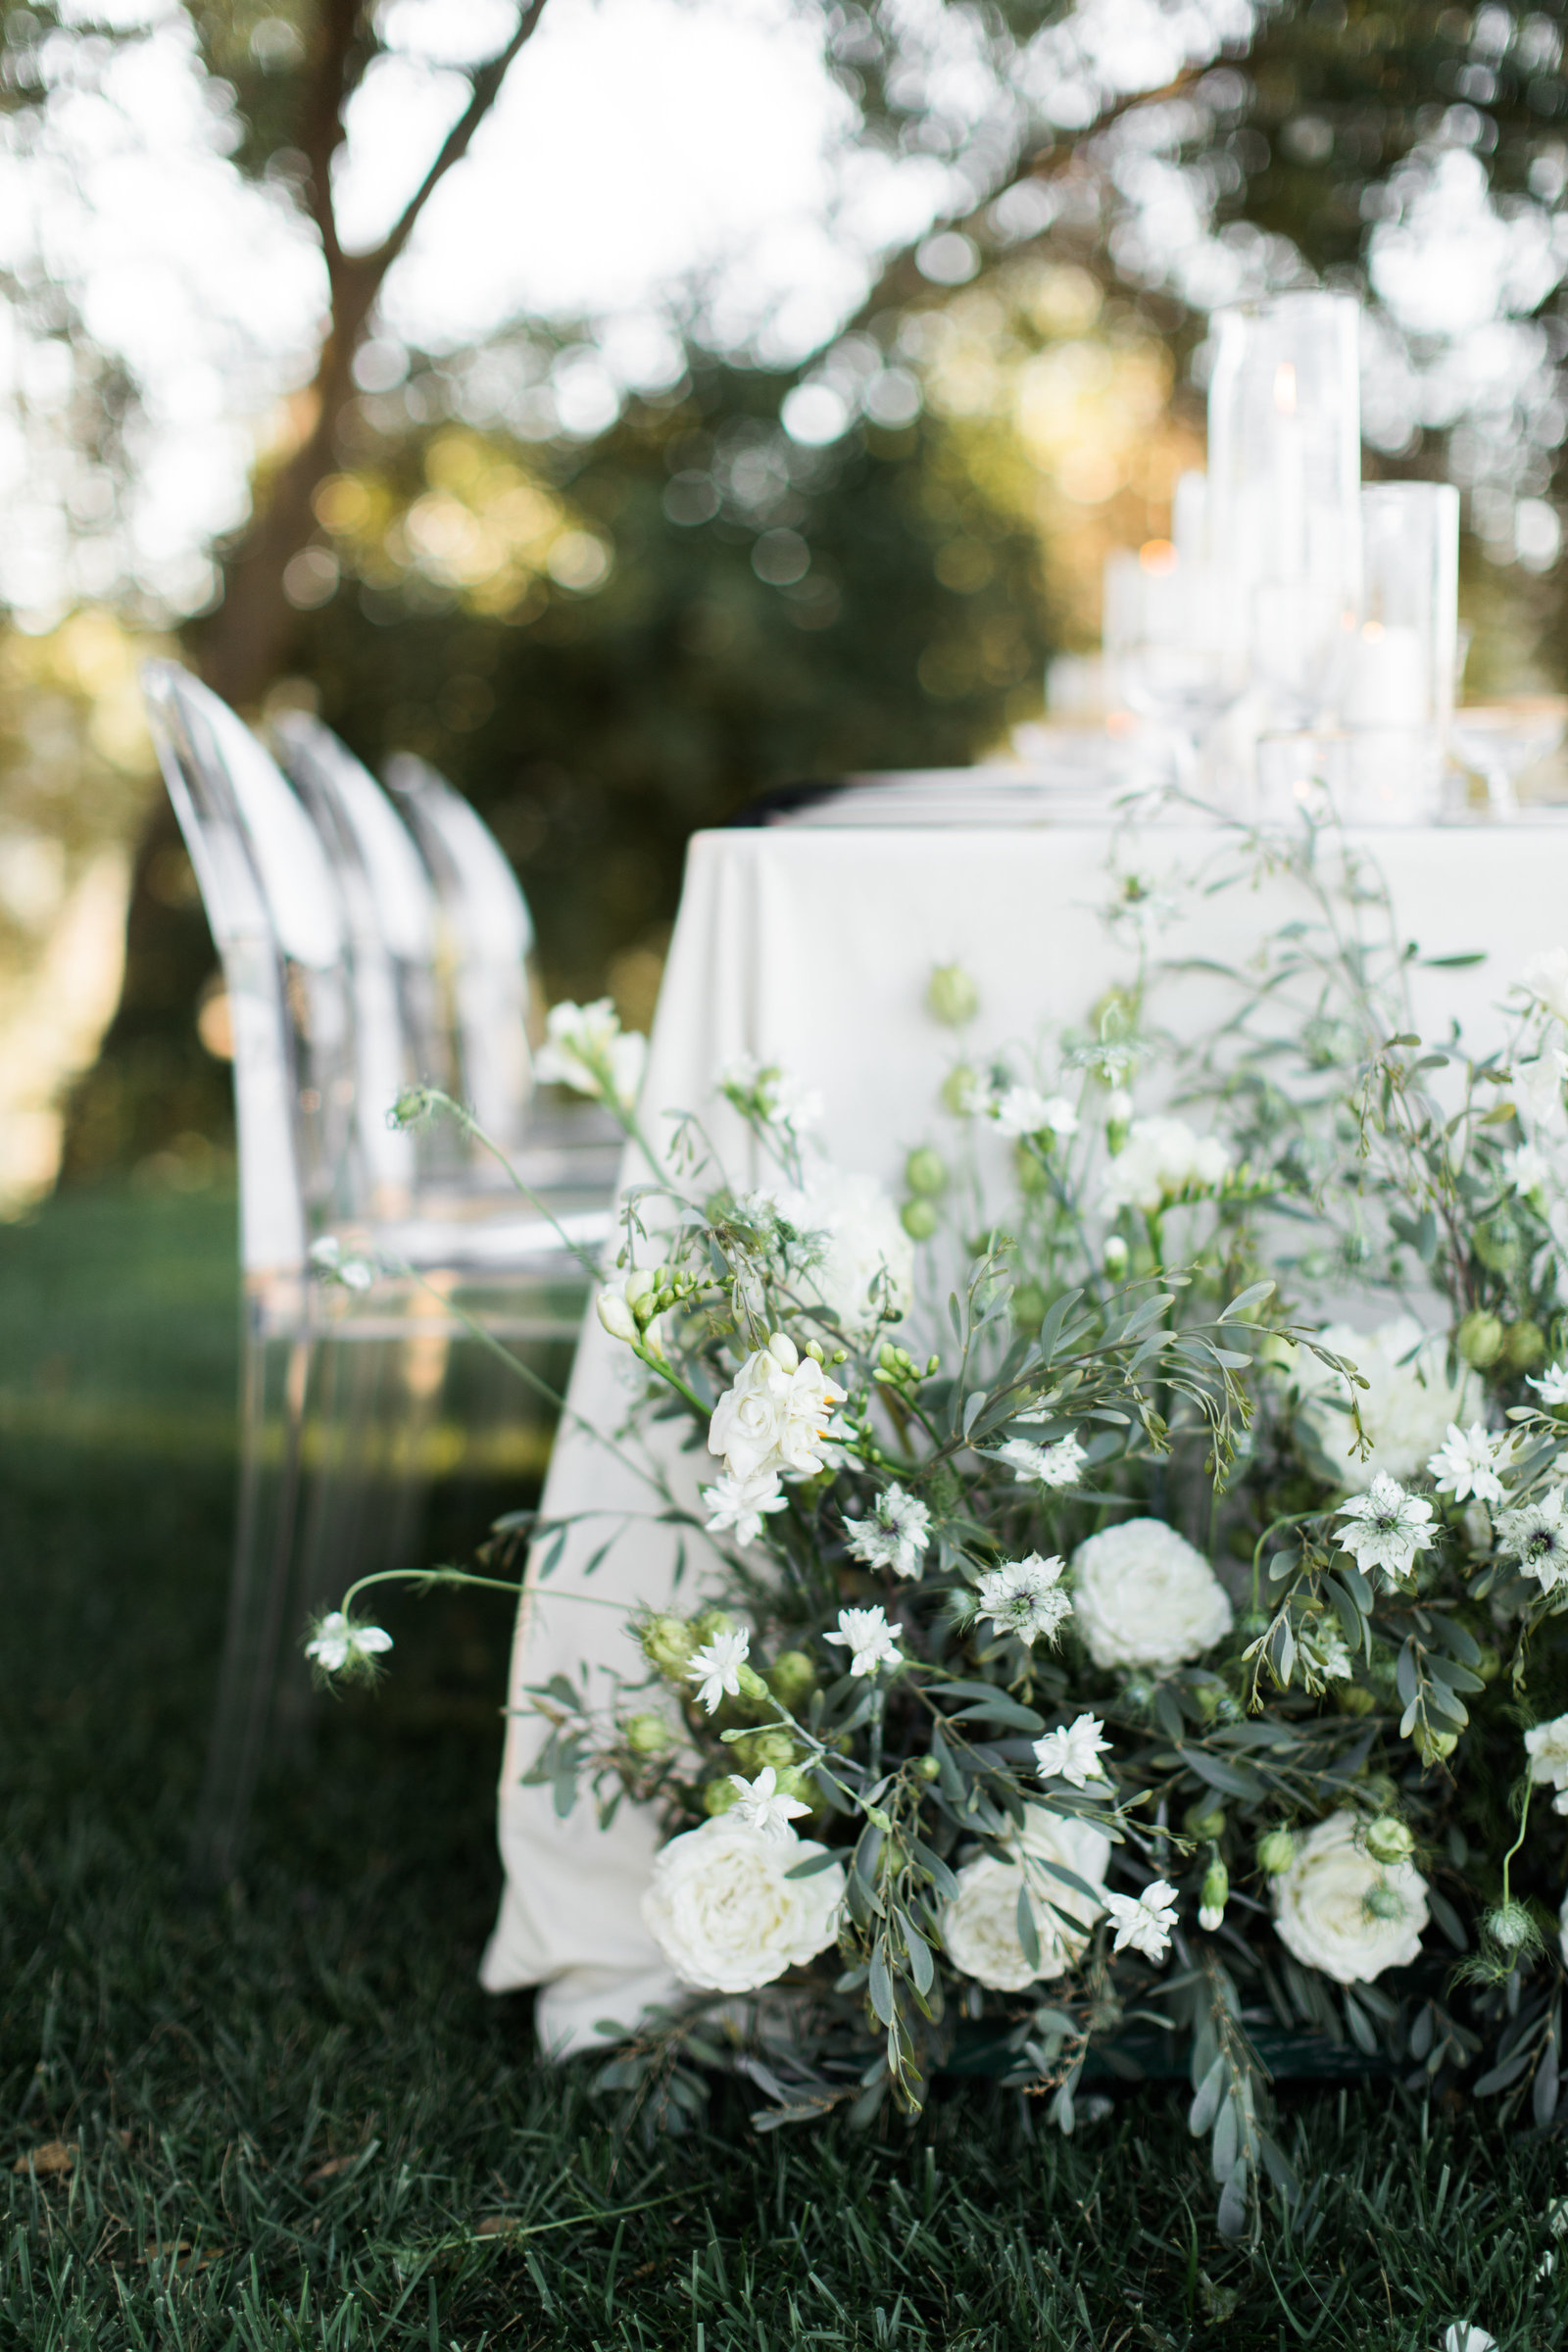 outdoor wedding table with flowers